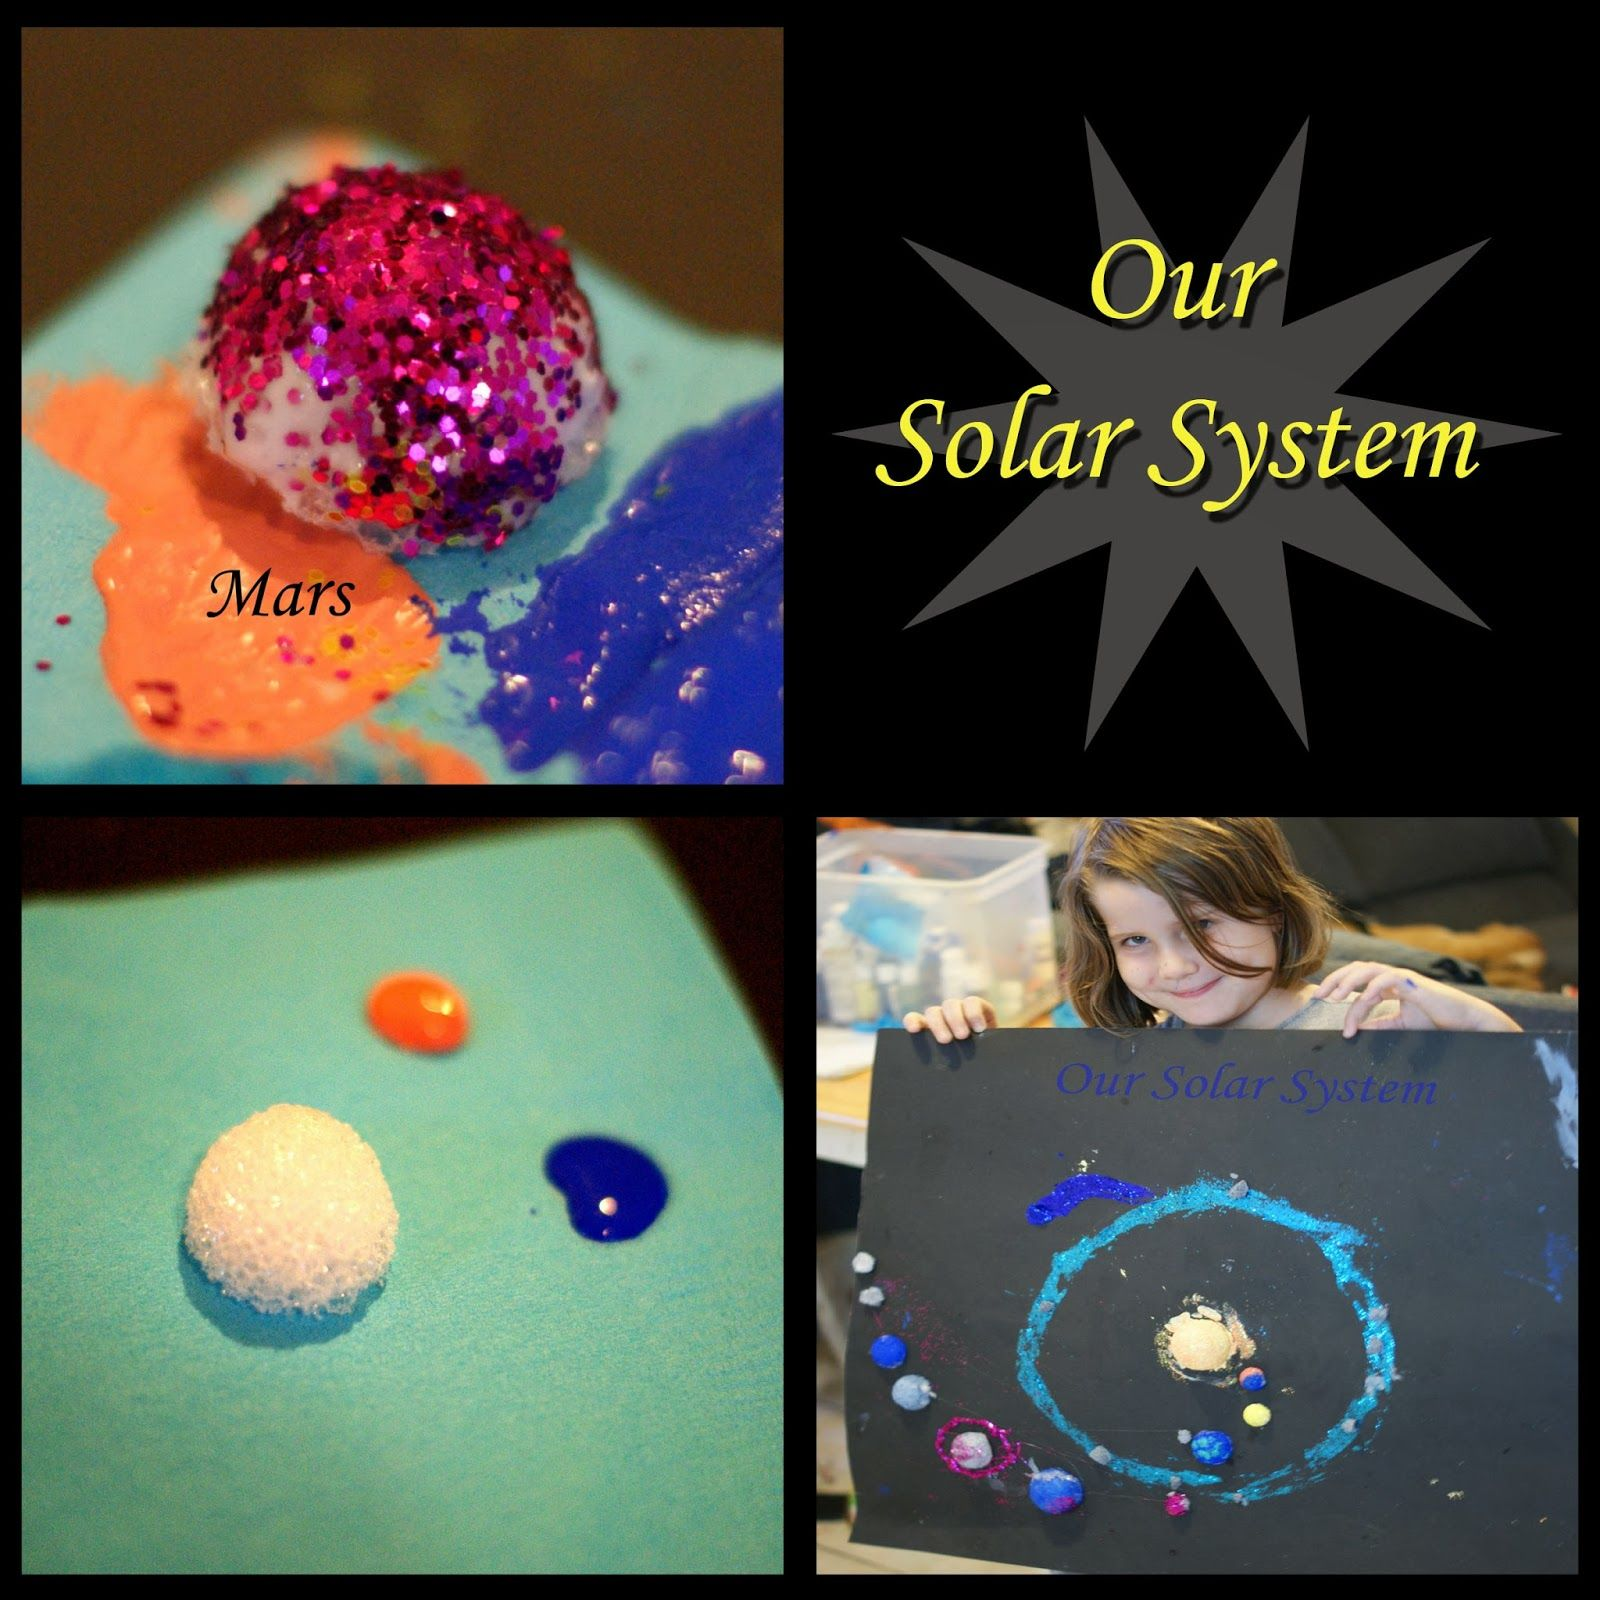 Solar System Science Project (With images) Solar system